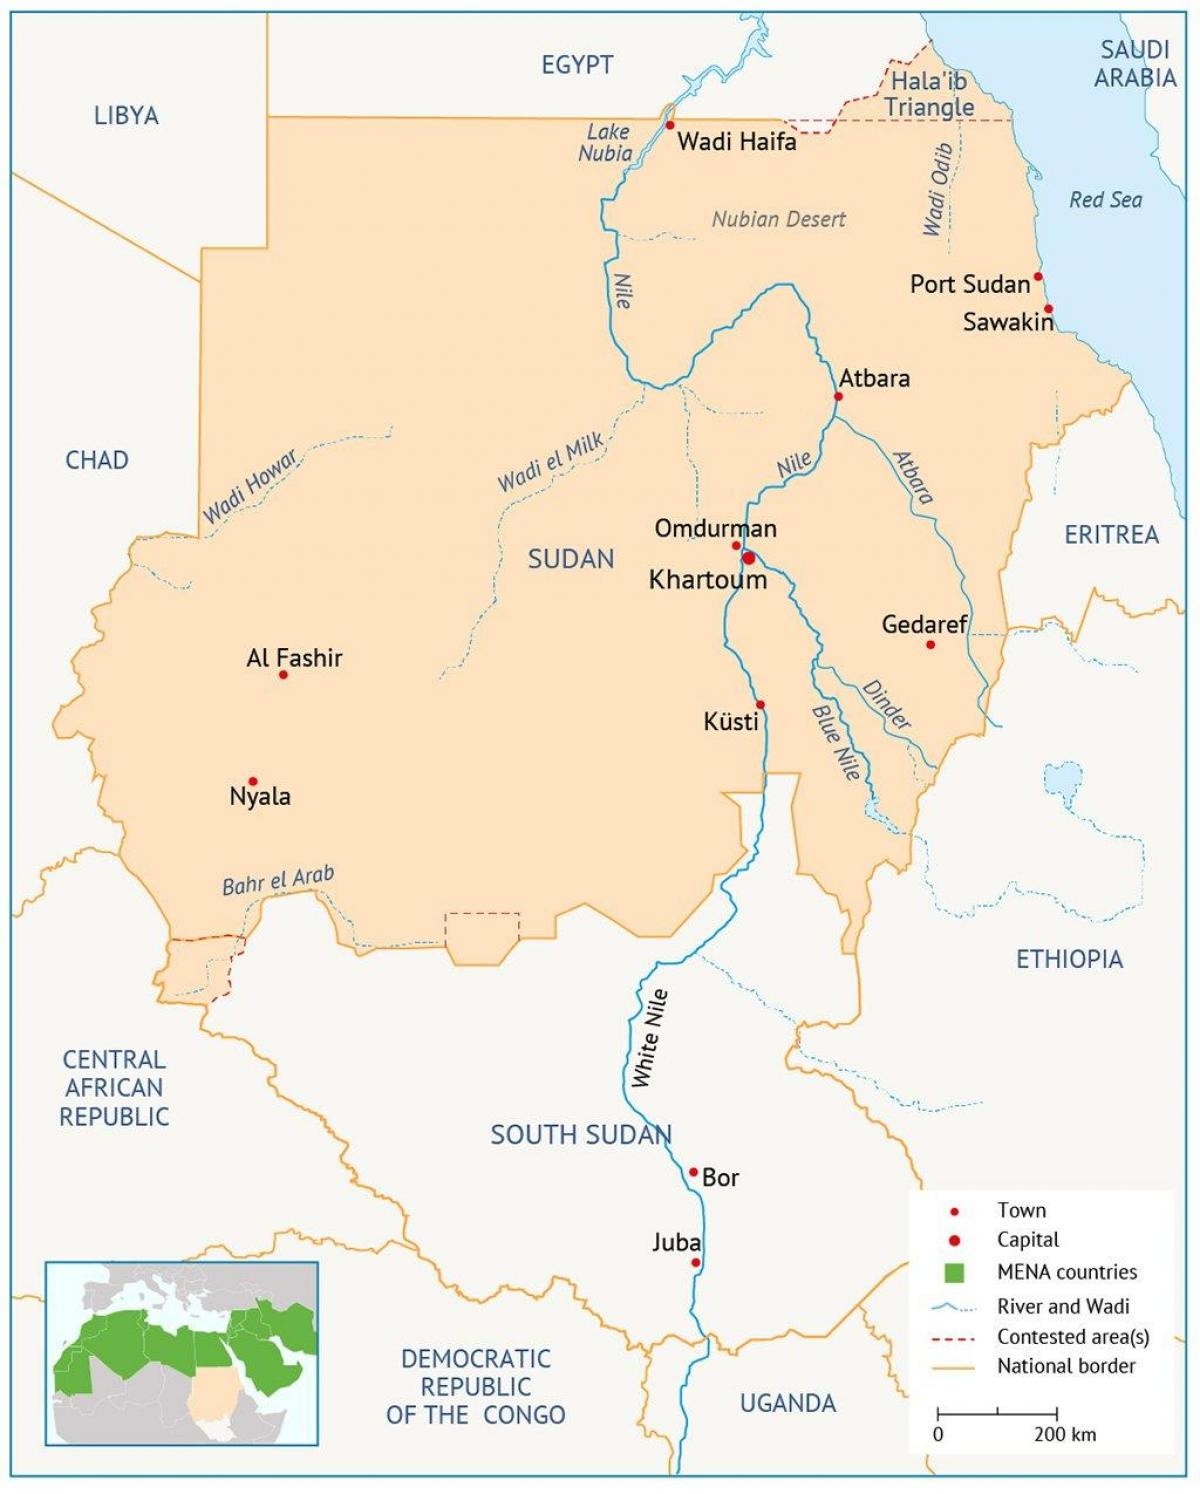 Sudan river map - Map of Sudan river (Northern Africa - Africa)